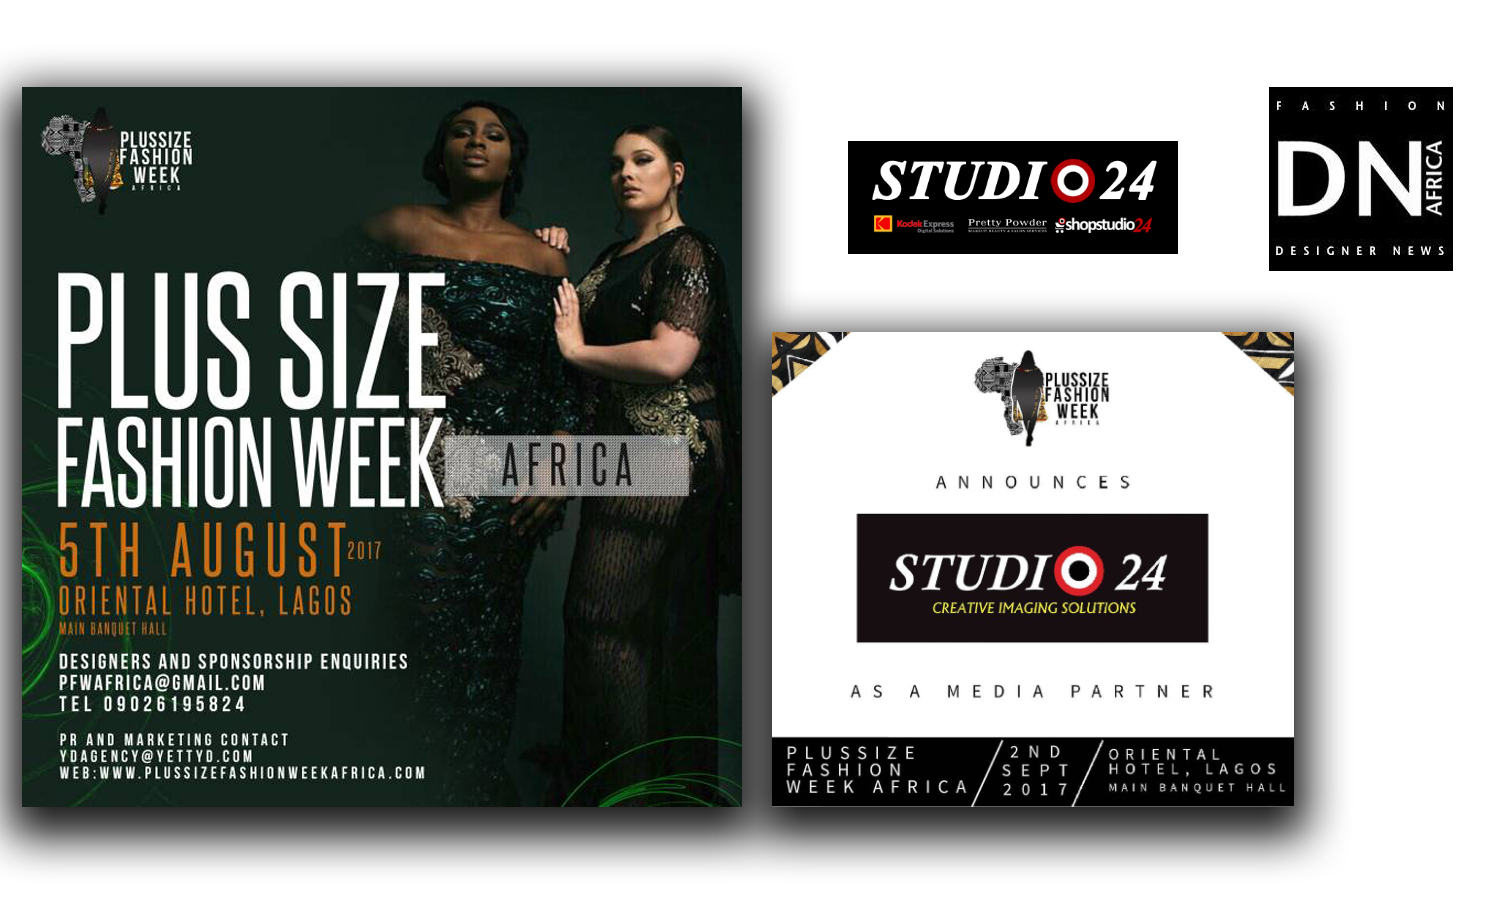 DNAFRICA-DN AFRICA-PLUS SIZE FASHION WEEK-2017